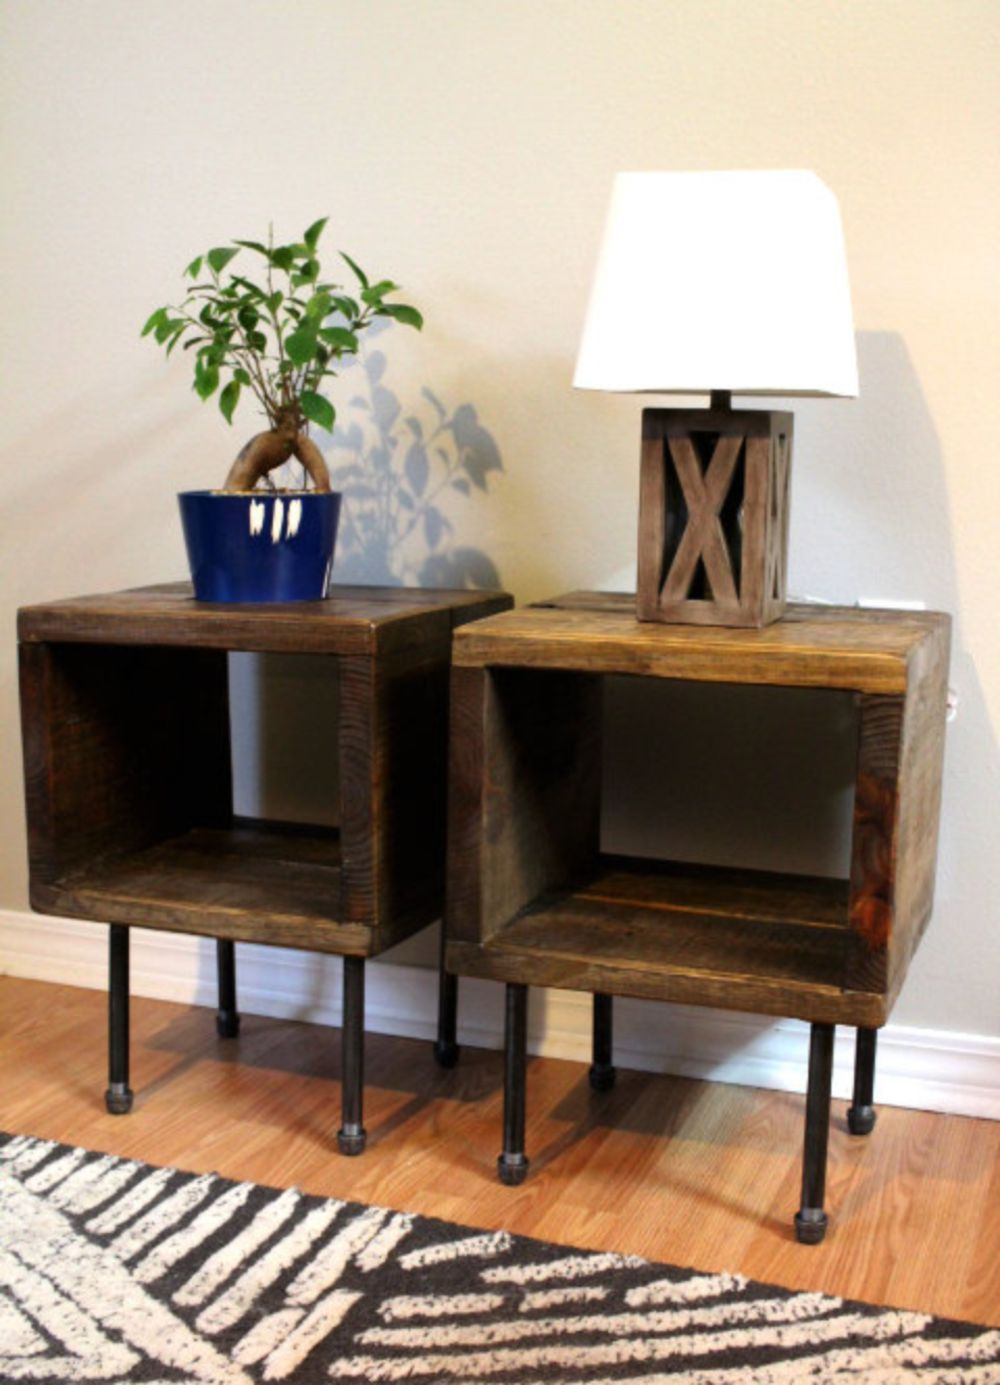 Awesome 48 awesome rustic industrial furniture decor https homedecort com 2017